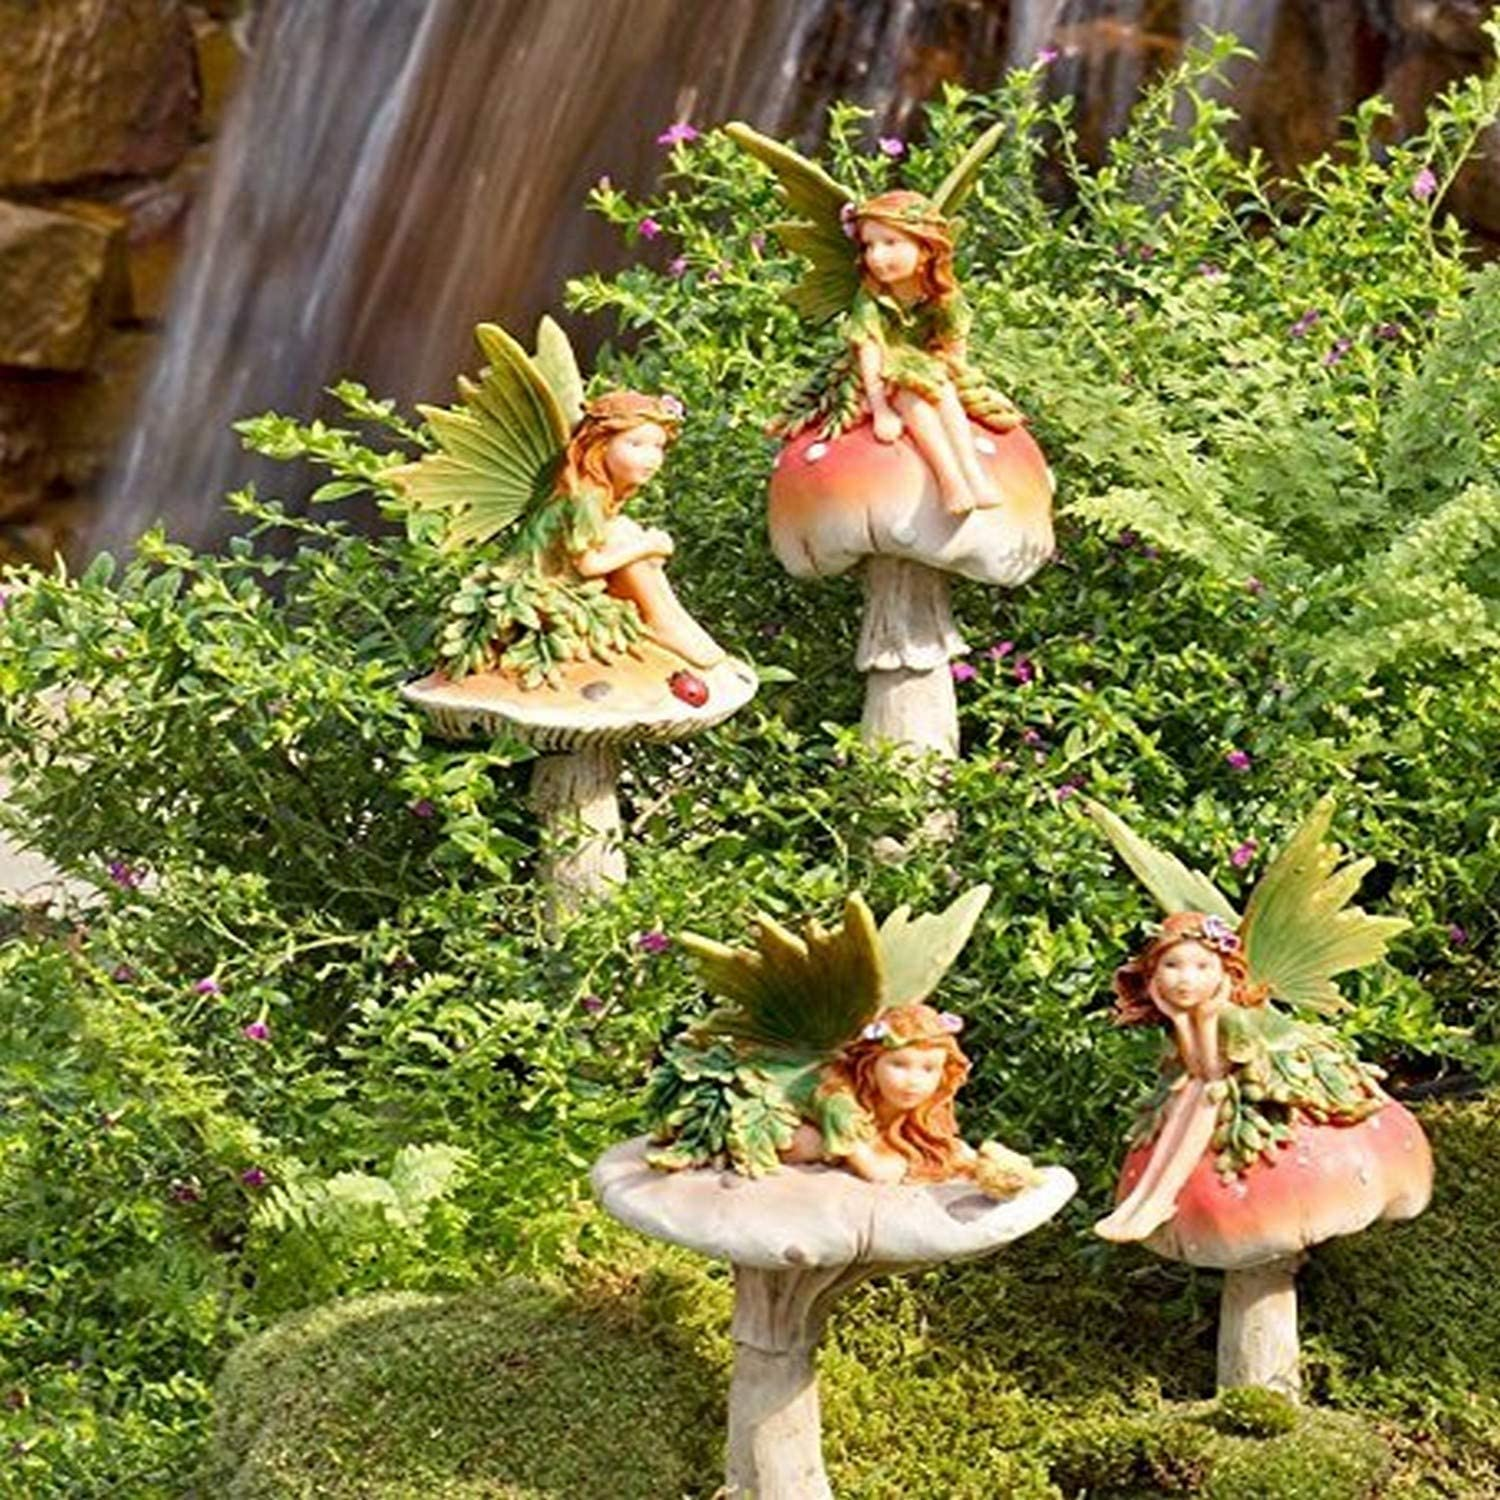 Plow & Hearth GO7431 Fairies On Mushrooms Outdoor Garden Stakes, Set of 4